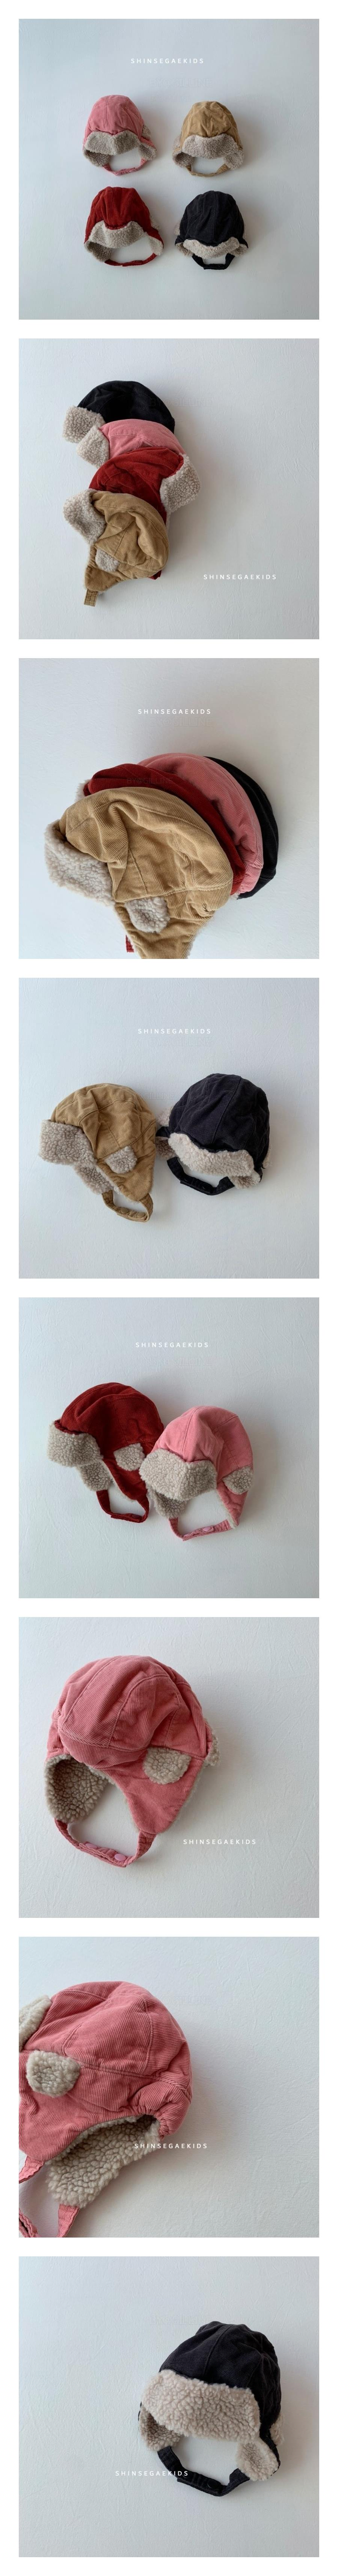 SHINSEAGE KIDS - Korean Children Fashion - #Kfashion4kids - Corduroy Dumble Hat